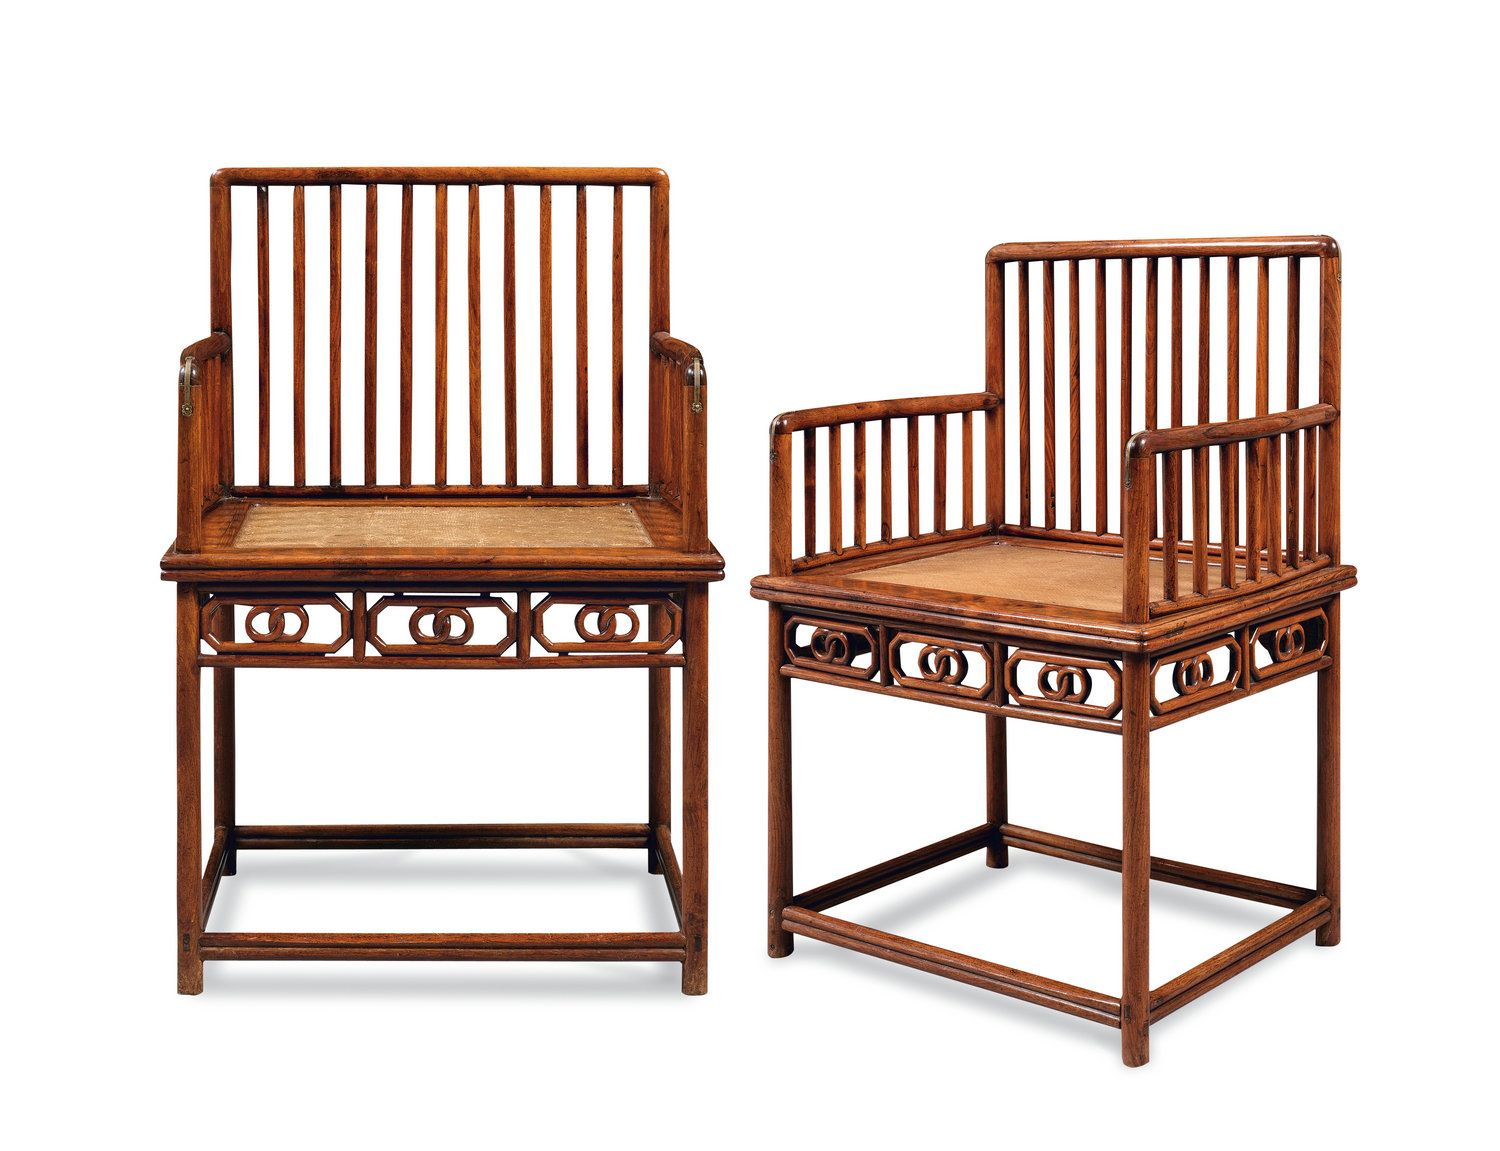 MING CHAIRS | Categoriesu003ePorcelain/Works Of Art/Furniture✖️More Pins Like